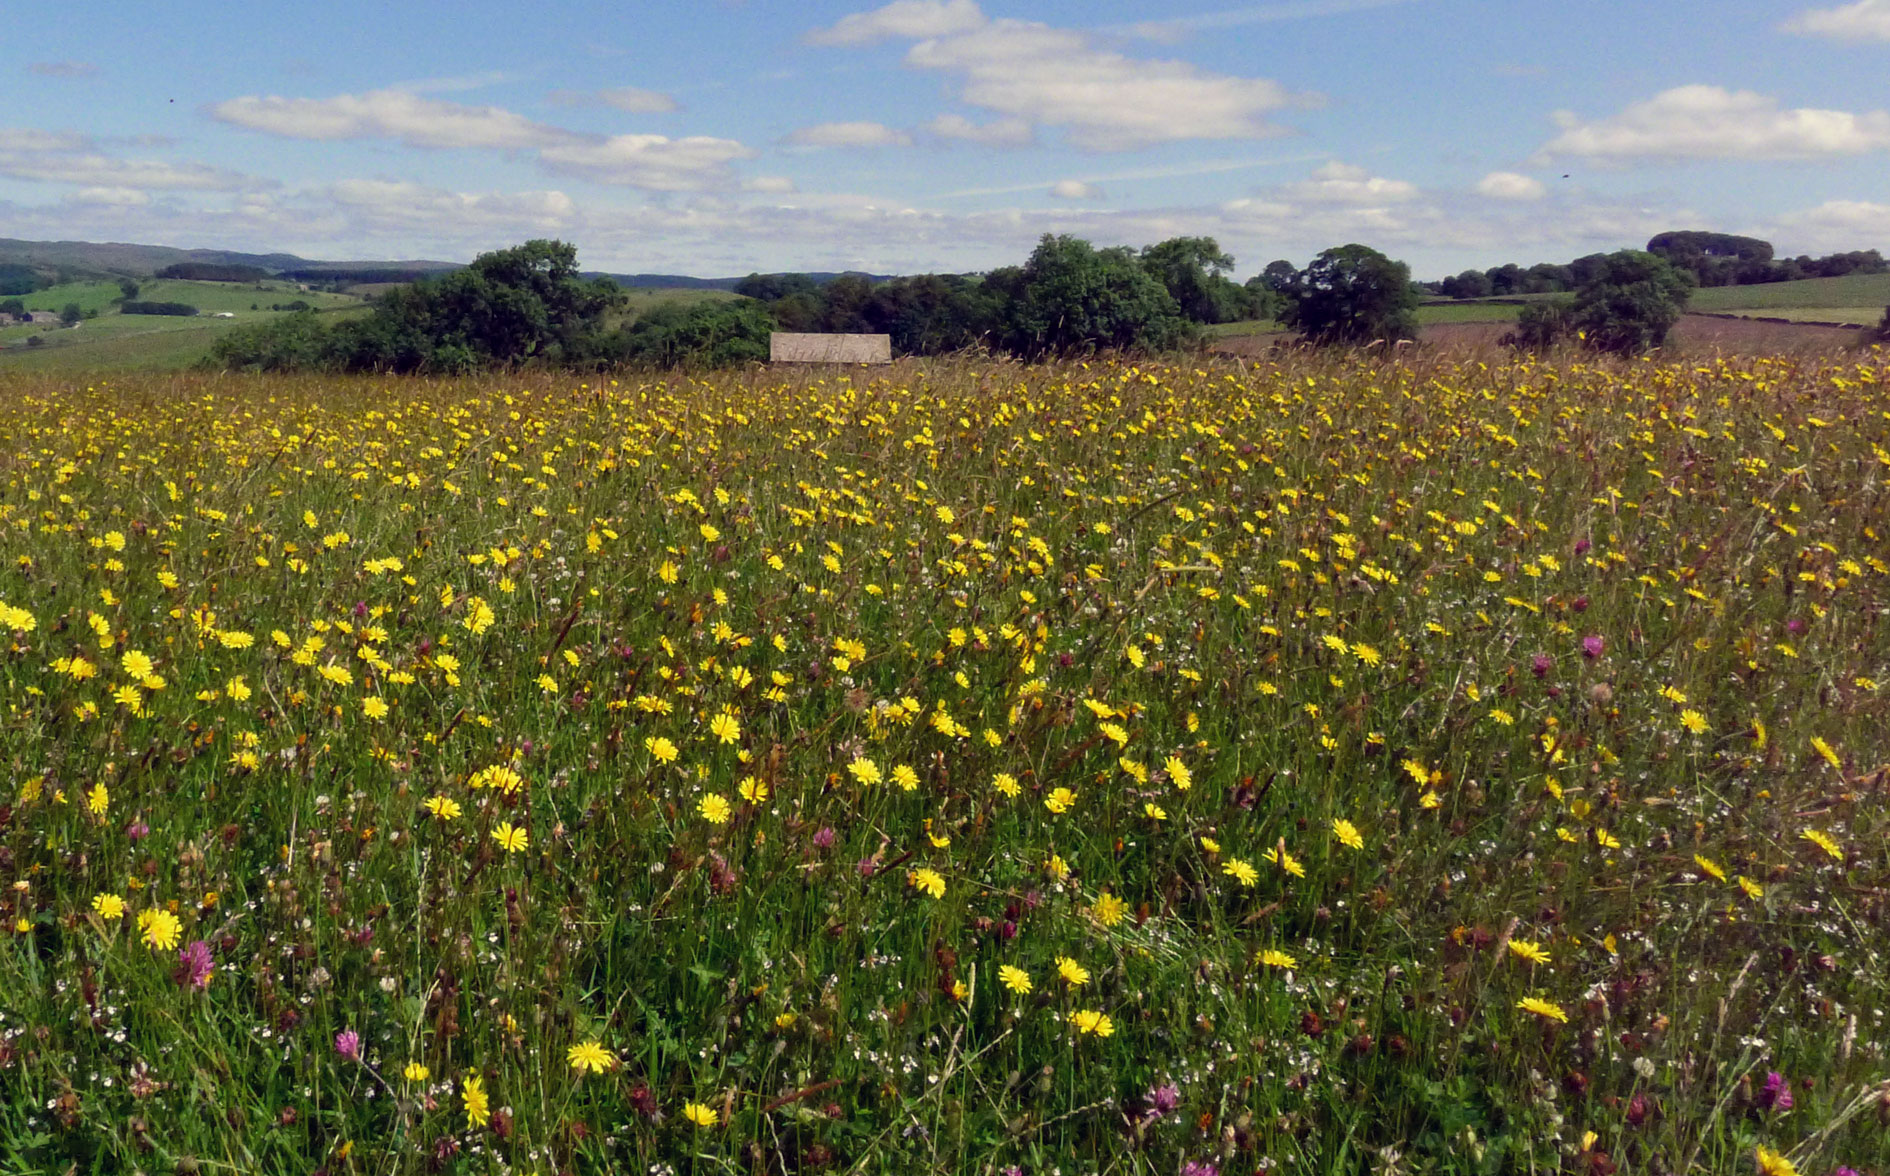 A traditionally managed species-rich meadow where seed can be harvested